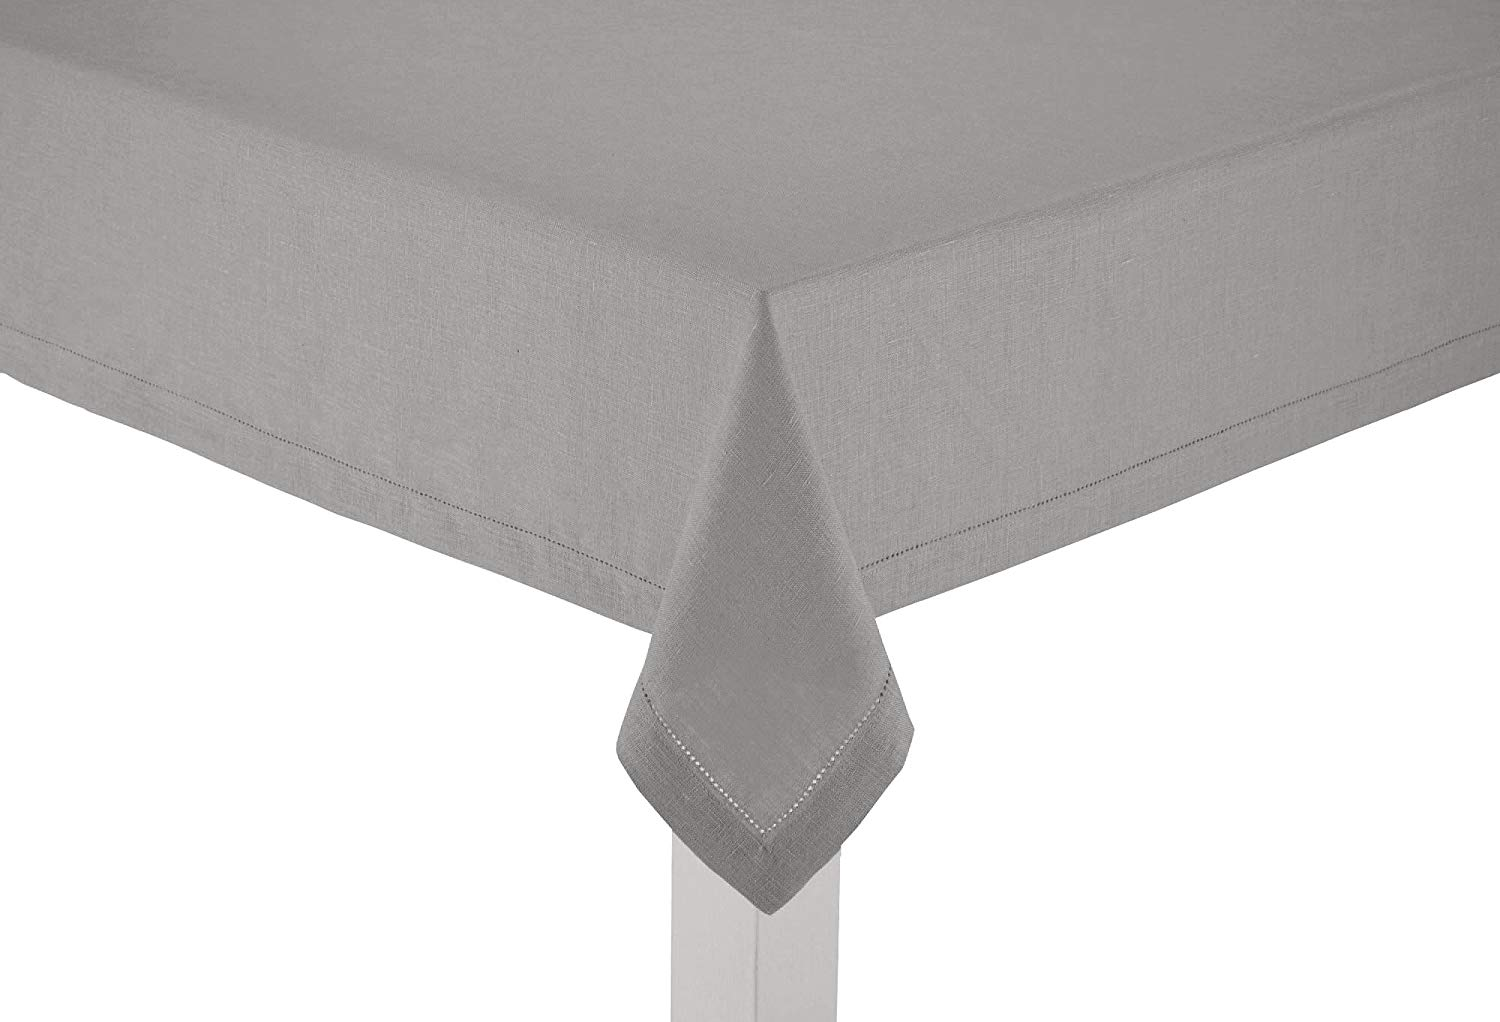 100% Linen Hemstitch Table Cloth - Size 60x108 Charcoal - Hand Crafted and Hand Stitched Table Cloth with Hemstitch detailing. The pure Linen fabric works well in both casual and formal settings